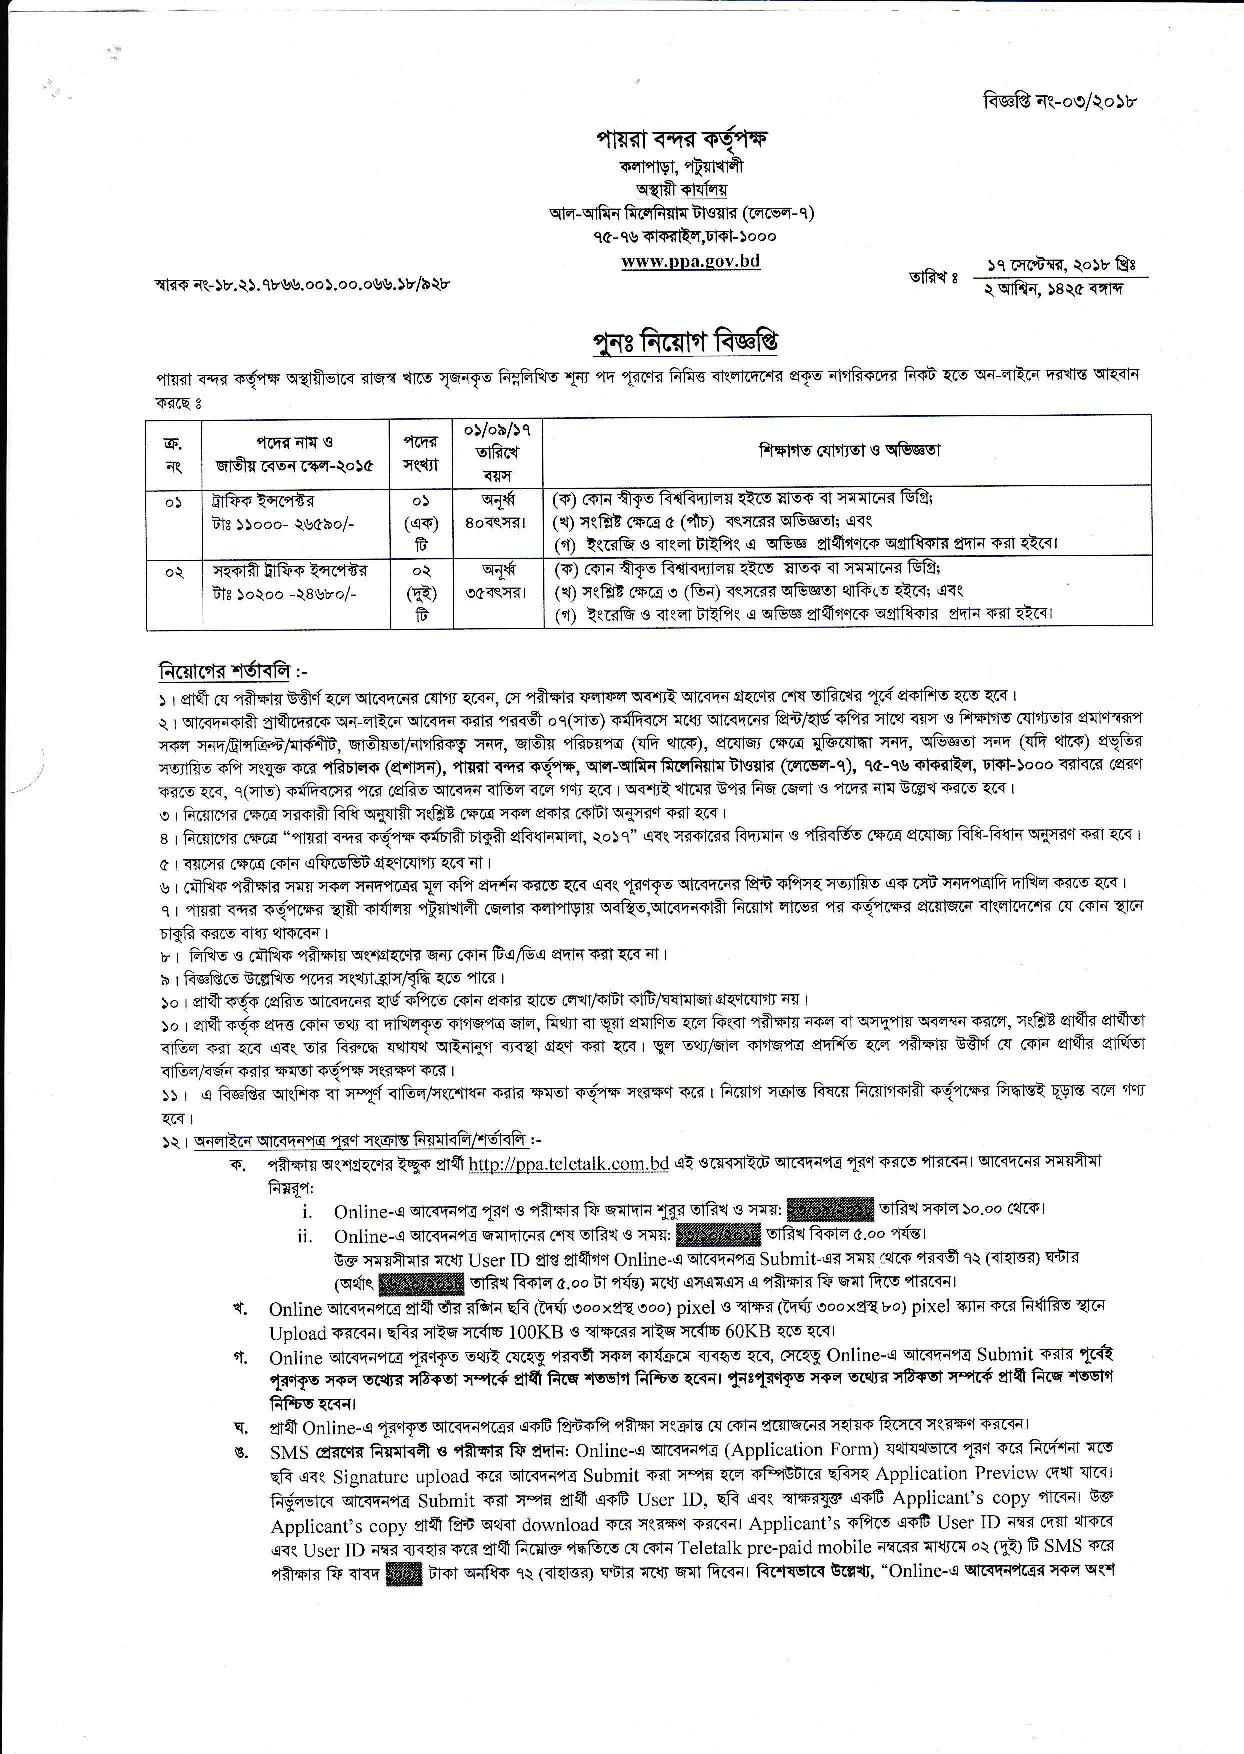 Payra Port Authority (PPA) job circular 2018 & Apply Instruction -2018